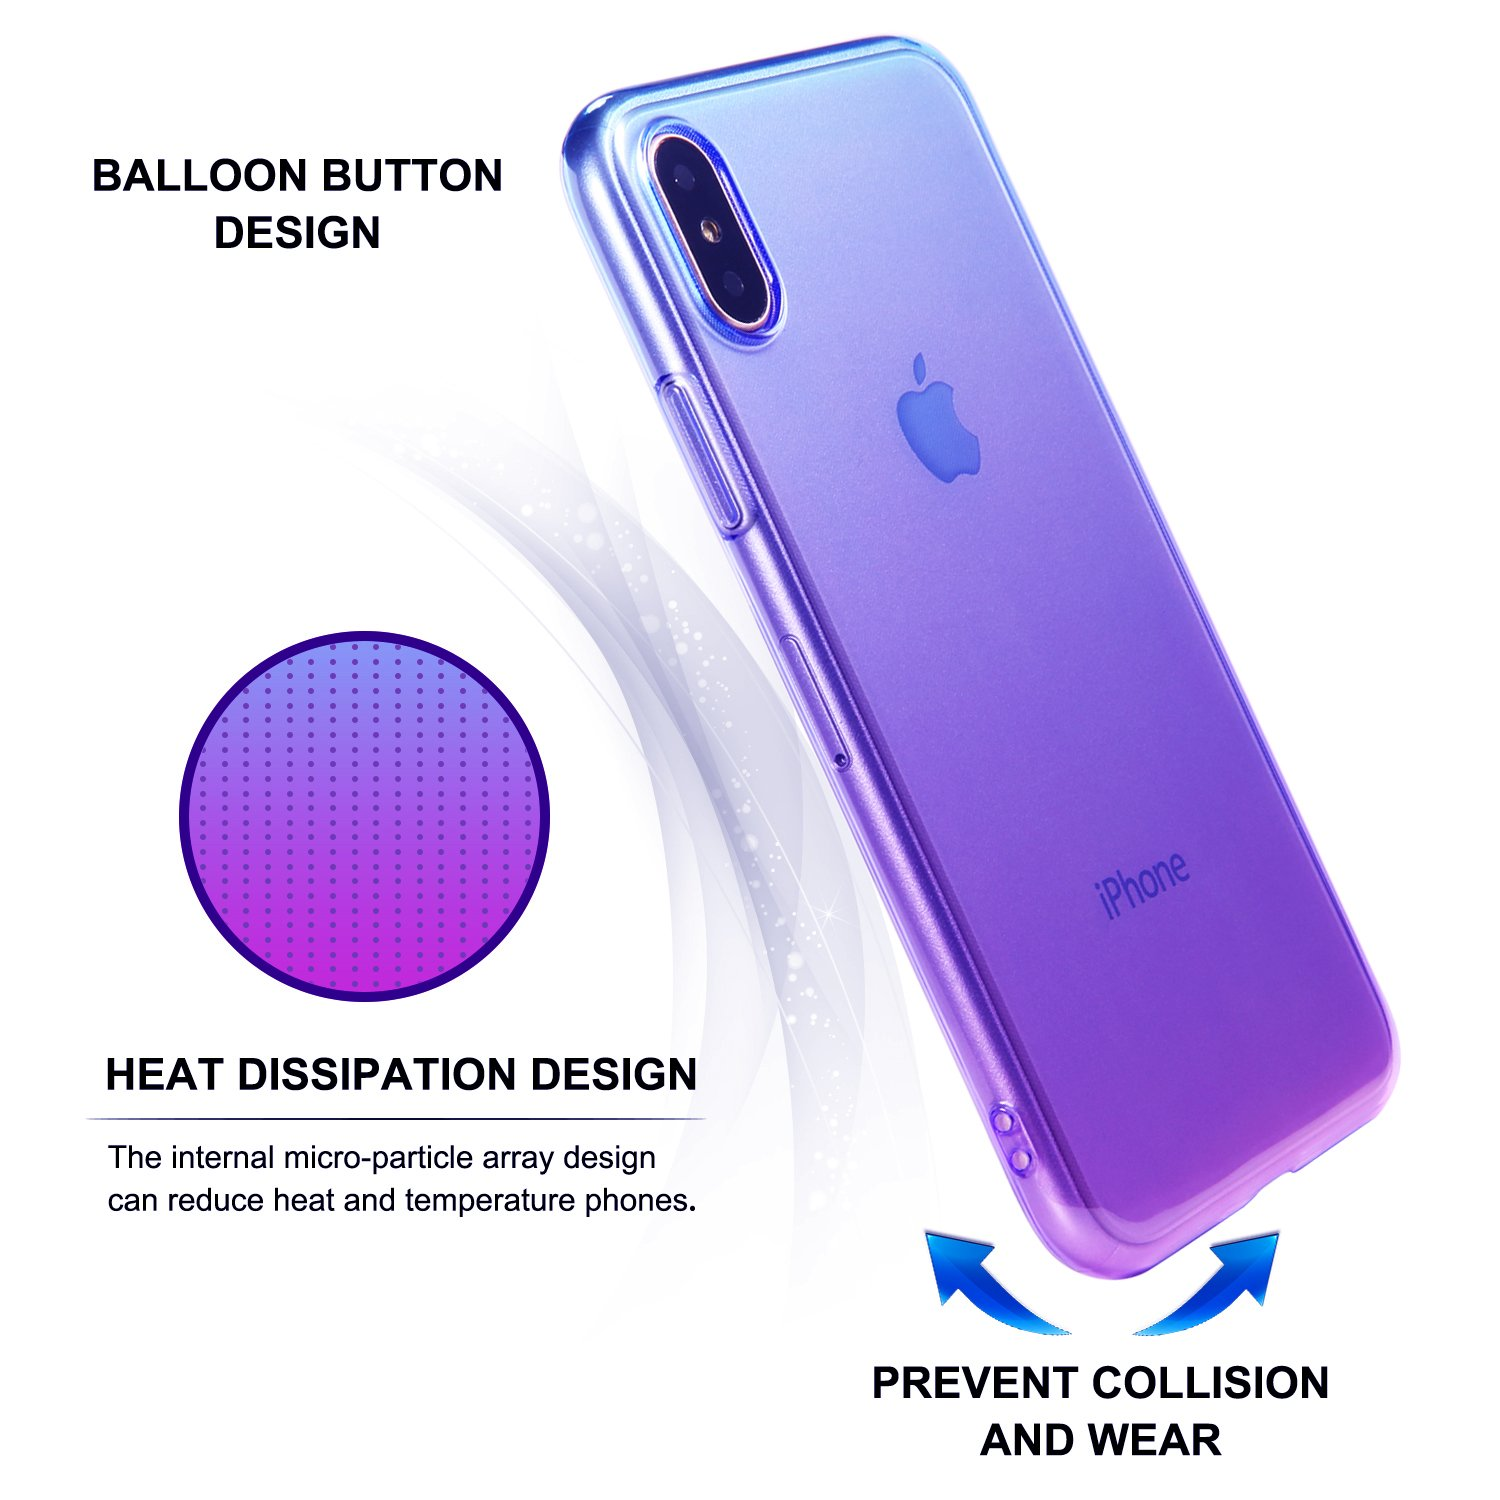 iPhone X Case, CLONG iPhone X Case Cover Gradual Colorful Clear Shell Flexible TPU Slim Bumper Case for Apple iPhone X (2017) 5.8inch (Blue Purple)